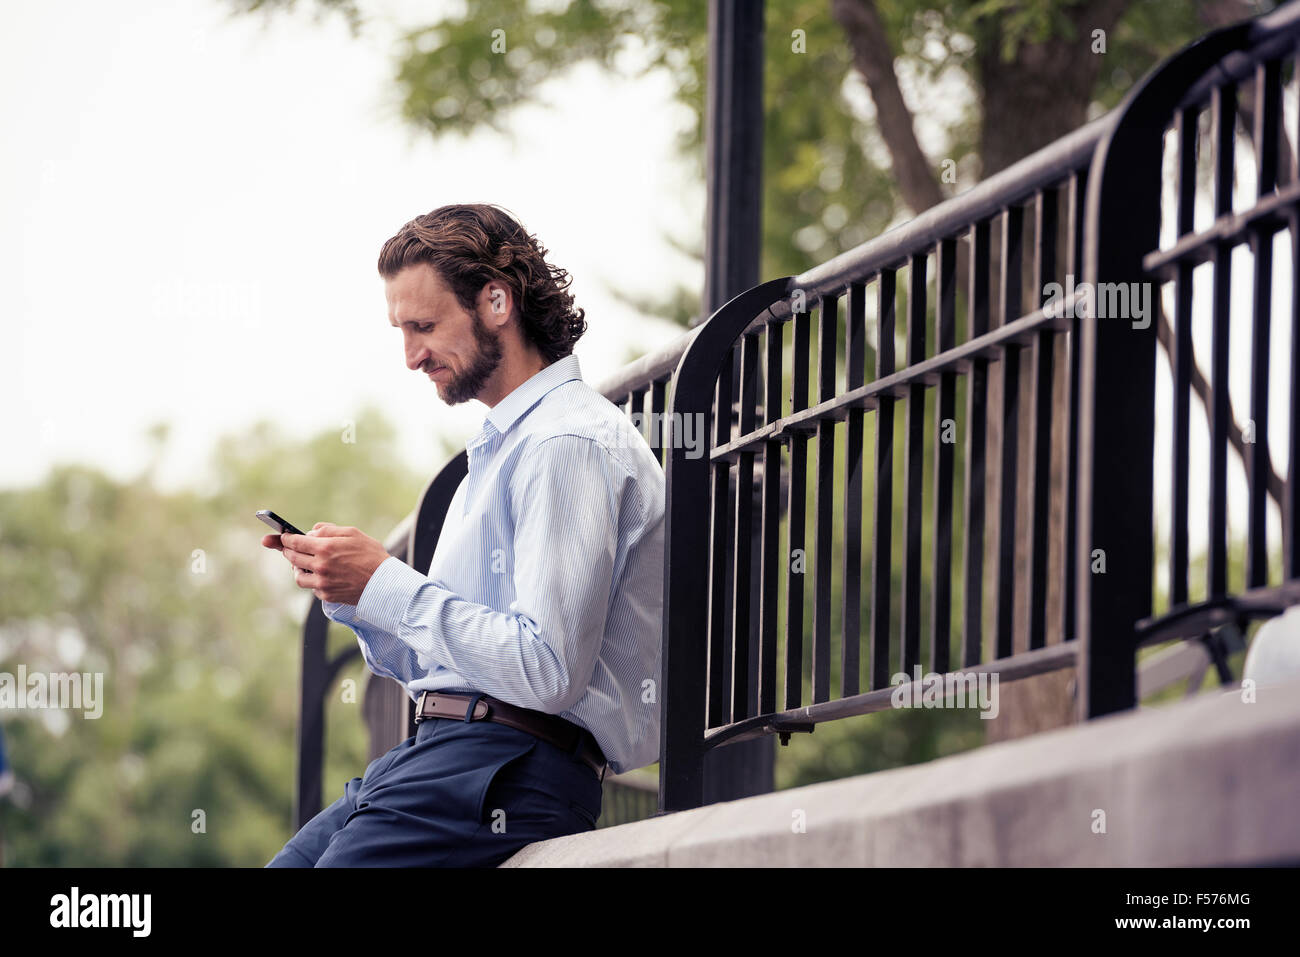 A man pausing on the street, sitting on a step checking his cell phone. - Stock Image